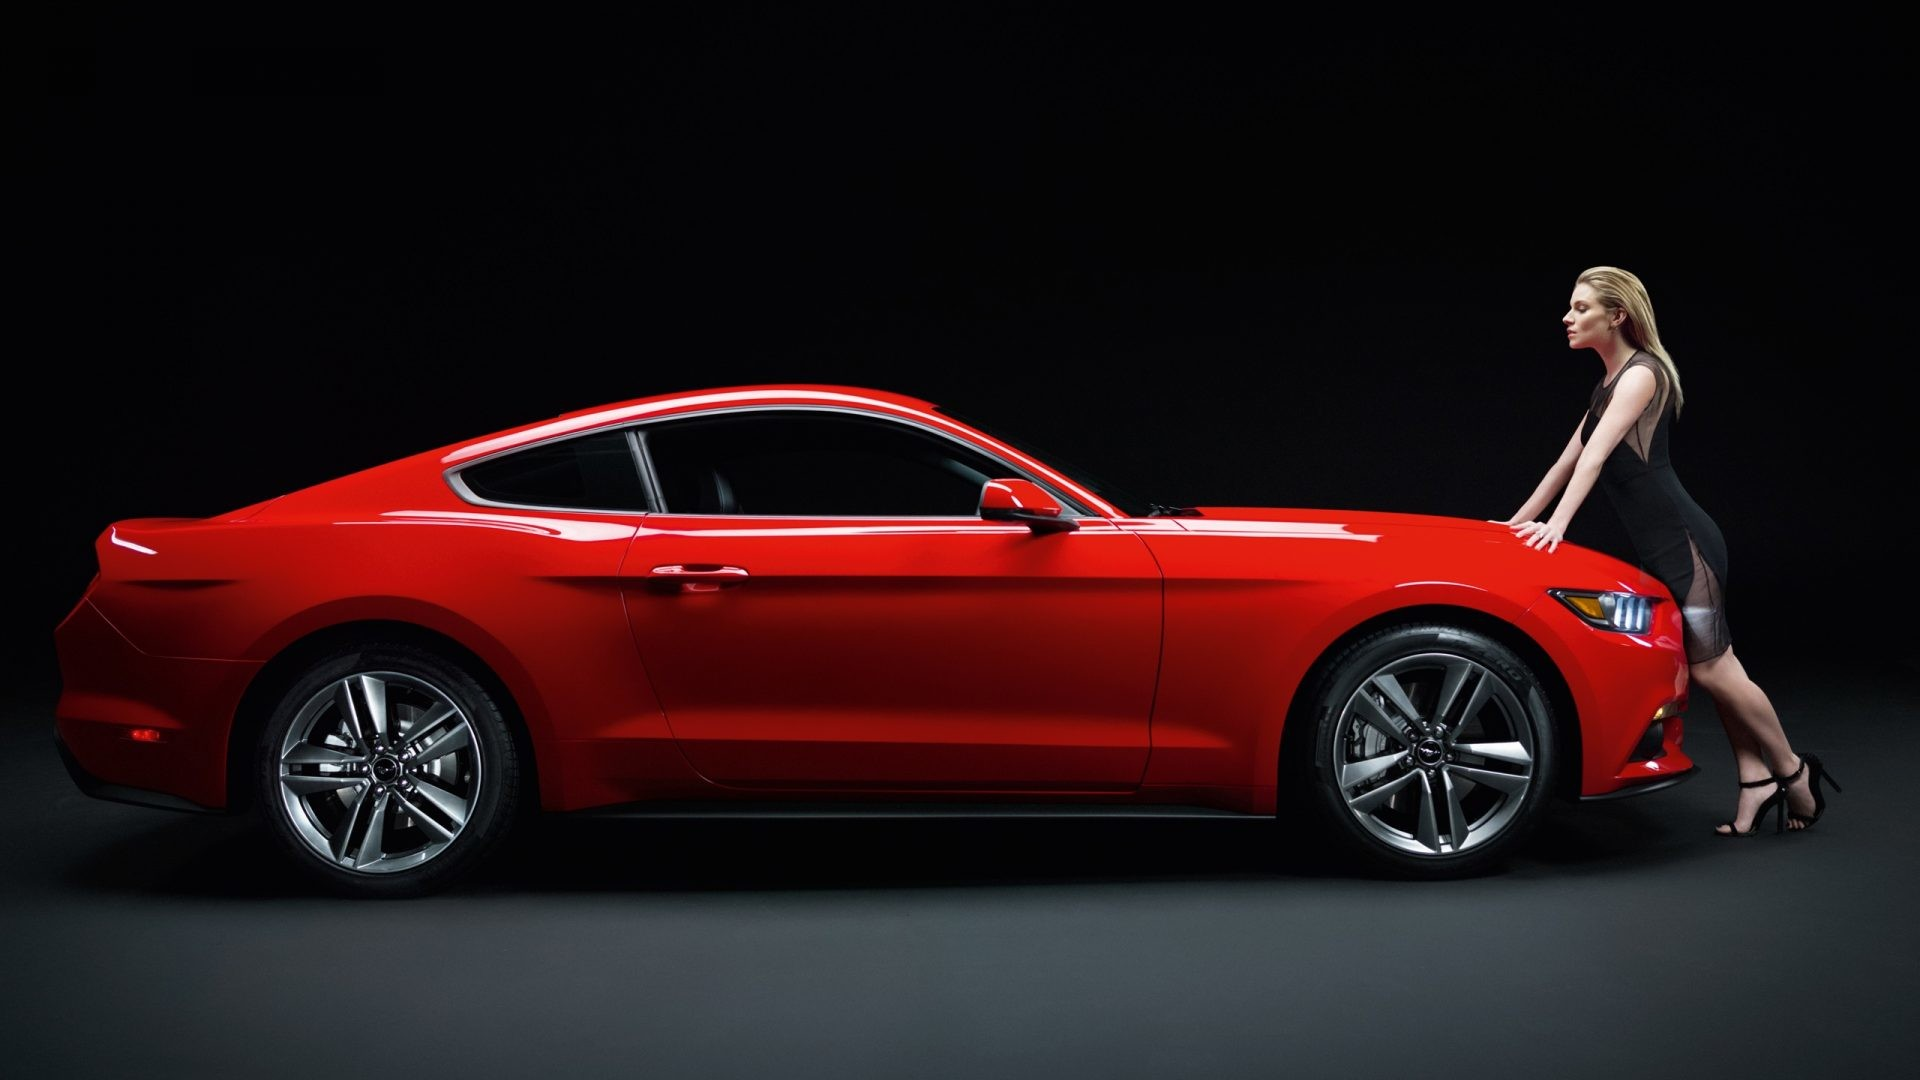 Ford Mustang GT red muscle car with girl 4k Wallpaper